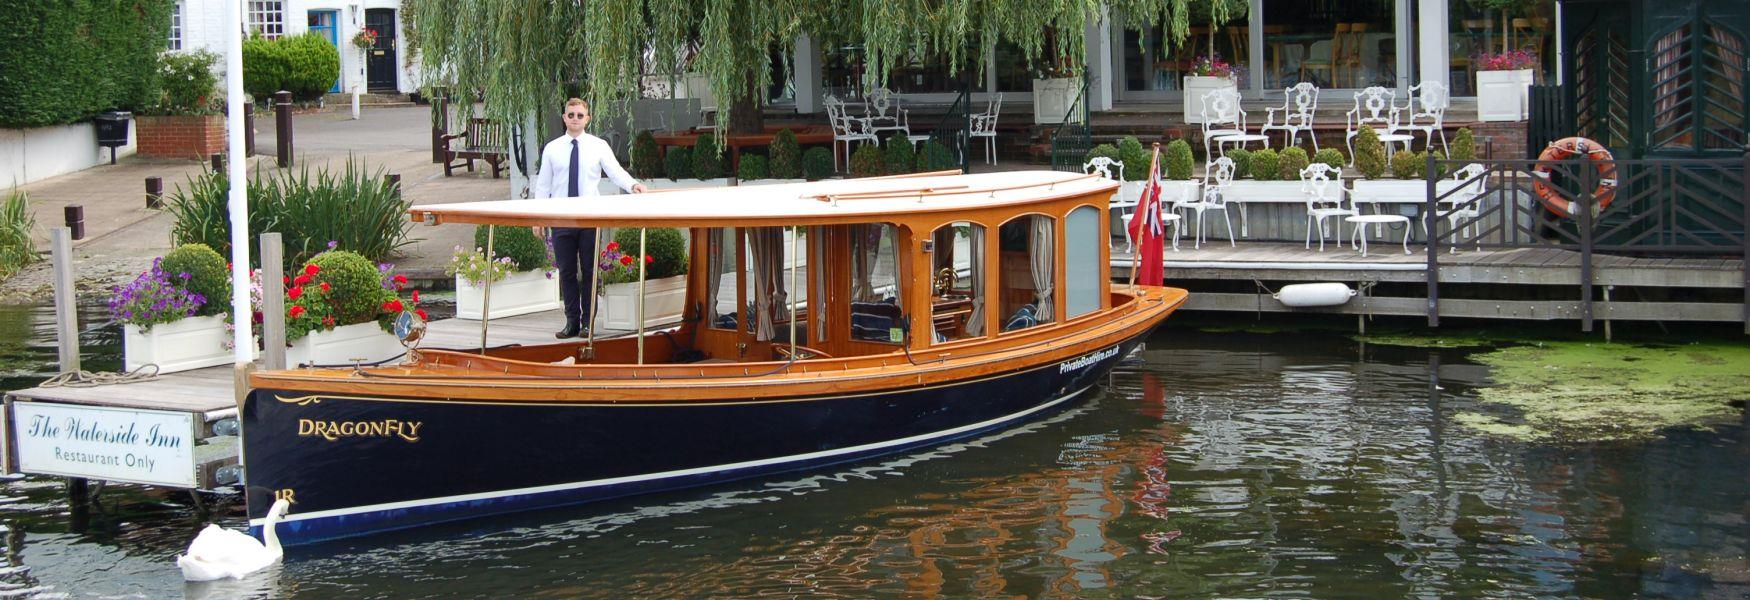 Private Boat Hire Ltd